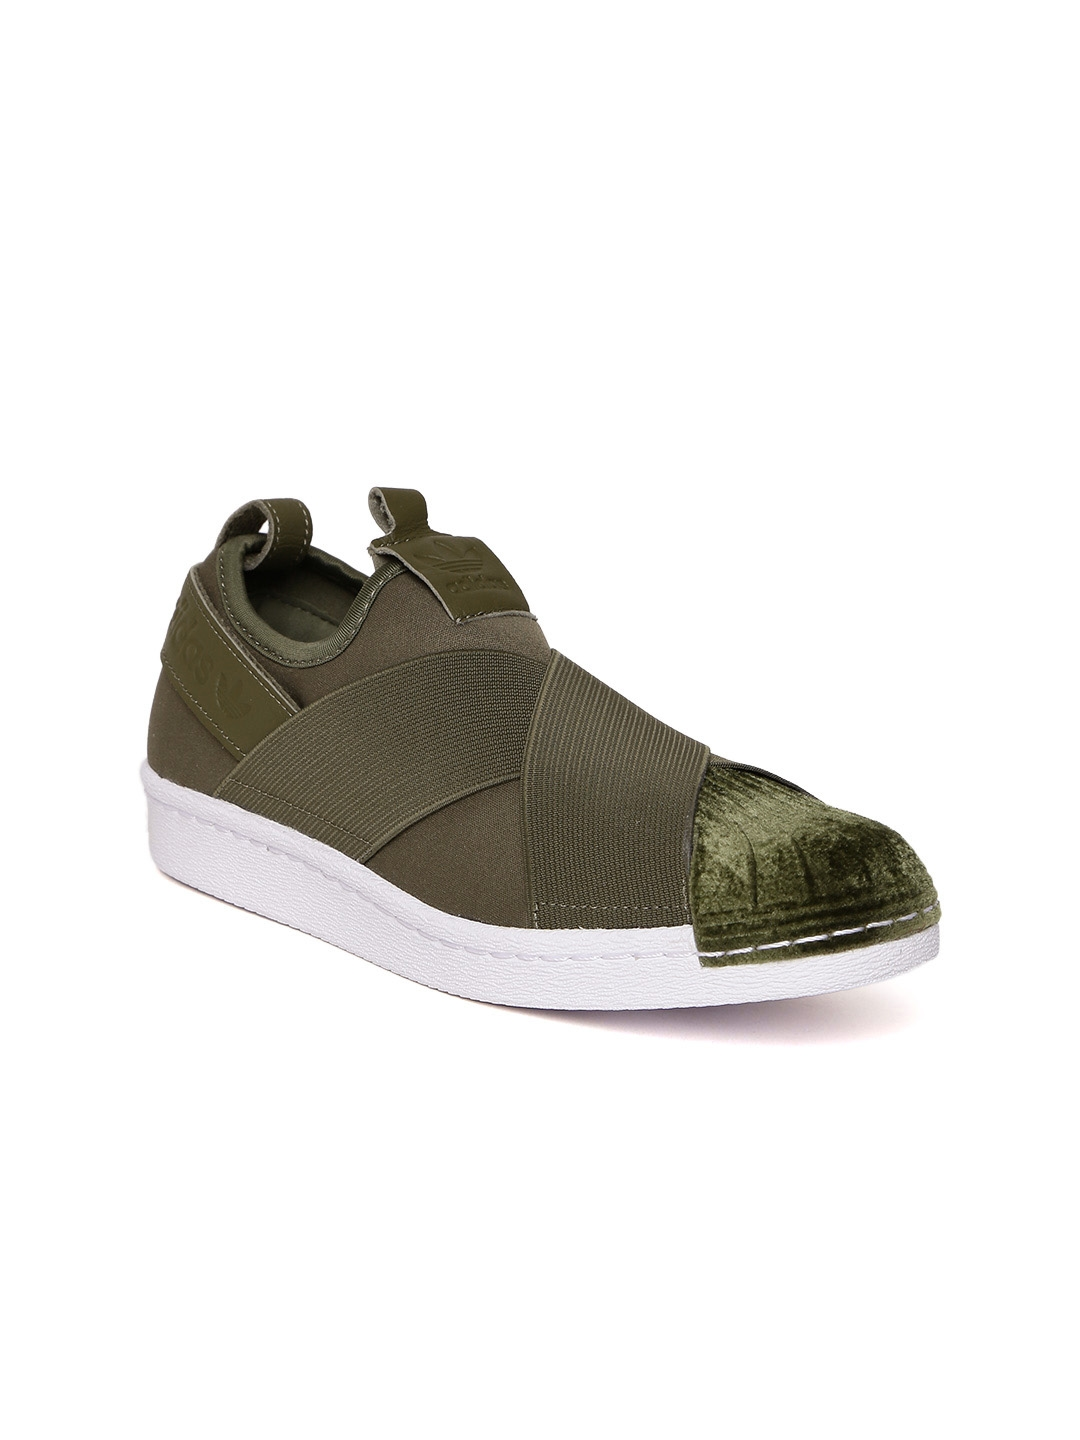 Buy ADIDAS Originals Women Olive Green Superstar Slip On Sneakers ... 33b0a16139